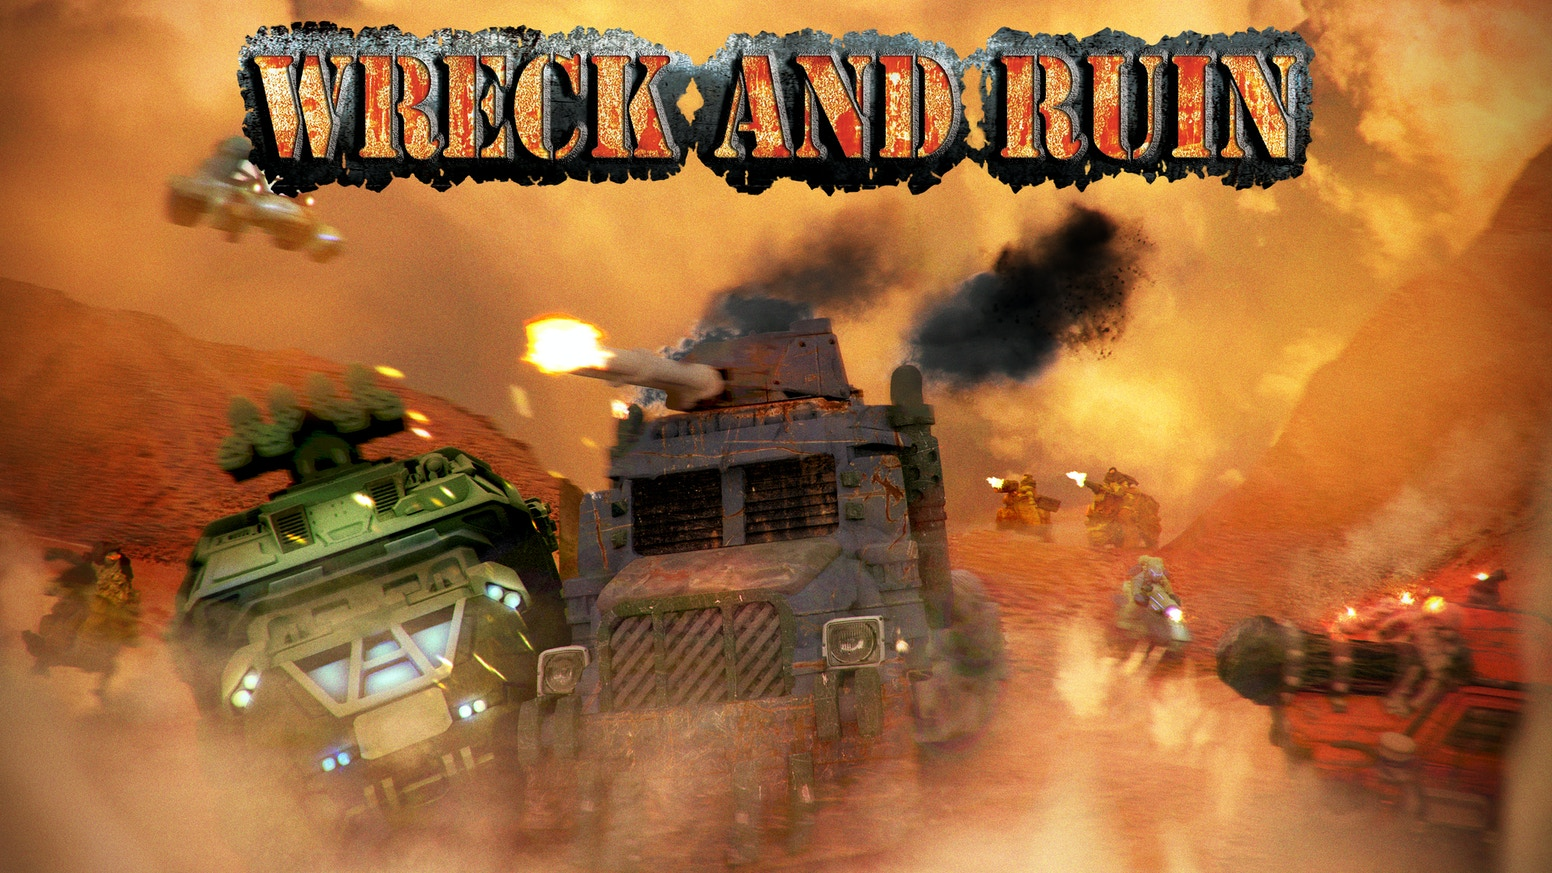 Shoot, ram, and wreck your way through the post-apocalyptic wasteland in a battle for resources and tactical domination